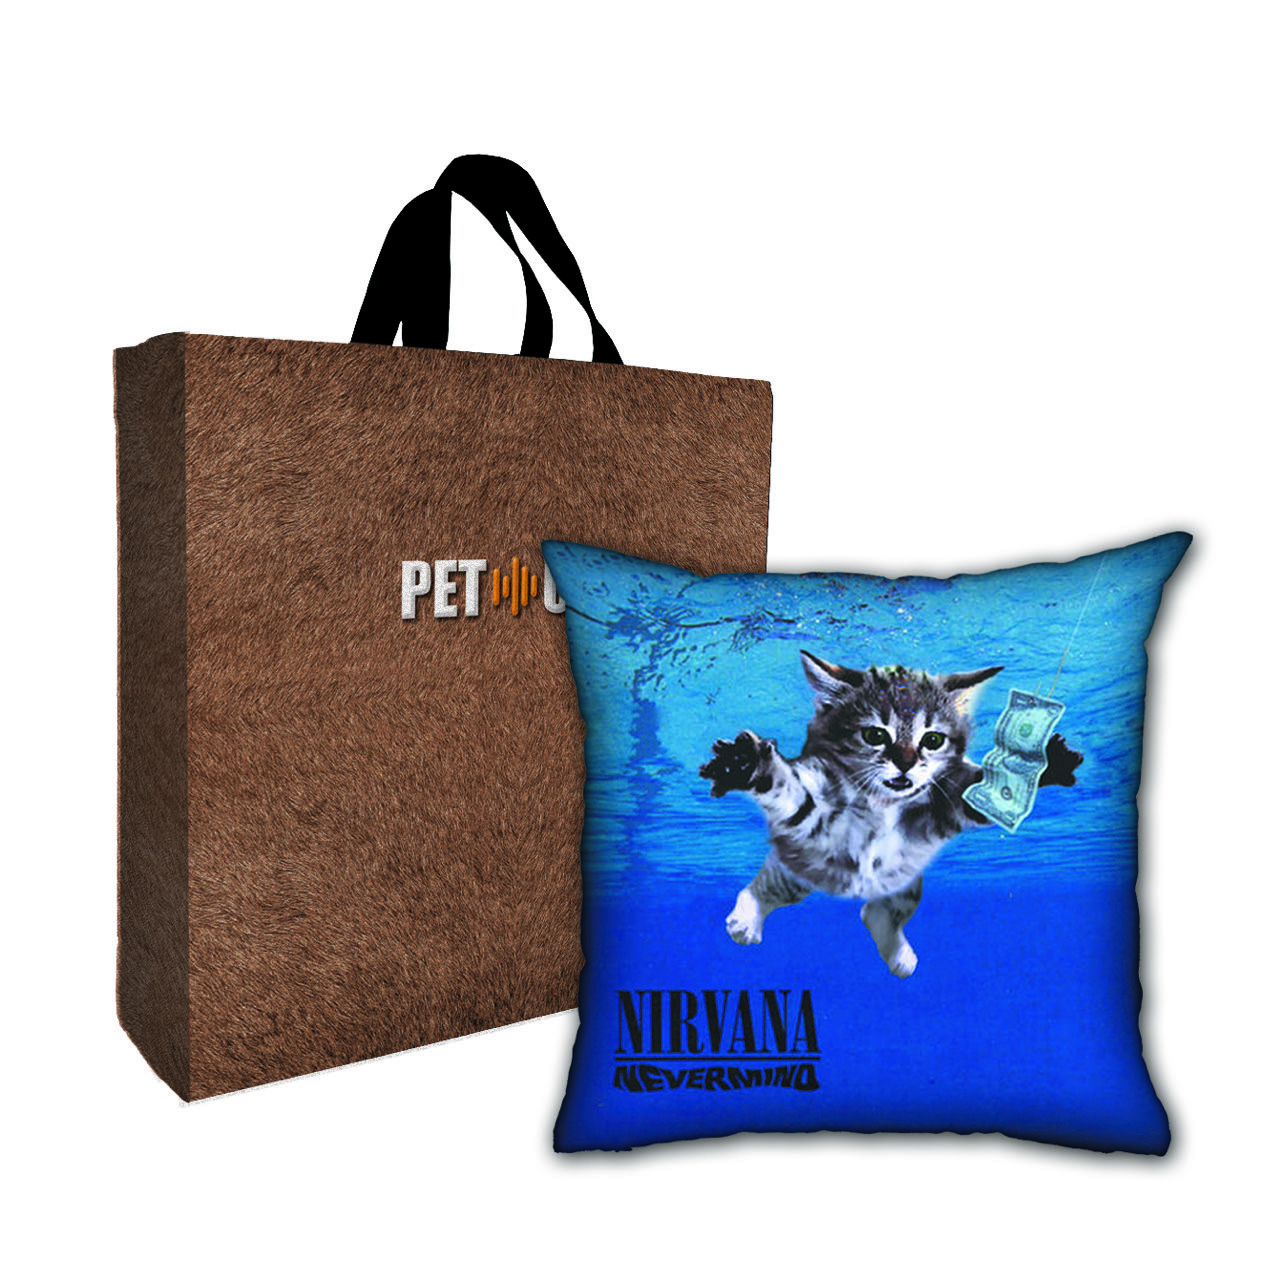 Kit Almofada & Sacola Bege Pet Use - Nevercat - Gato